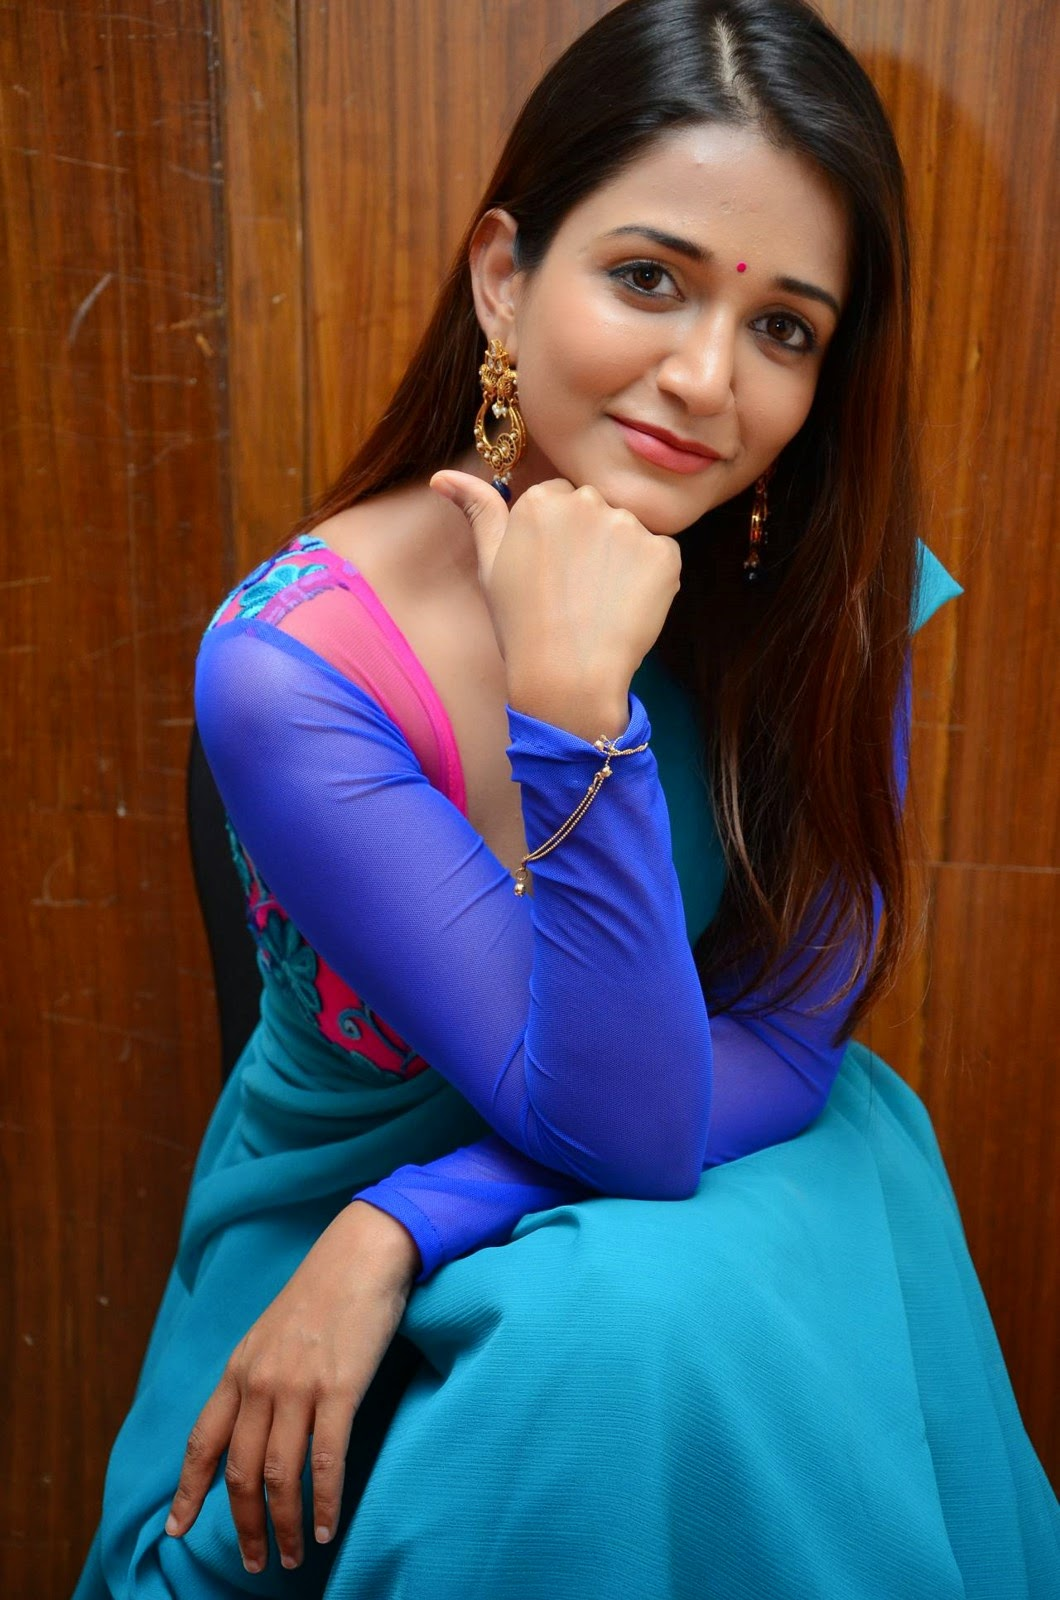 cute beautifull anaika soti free hq pictures